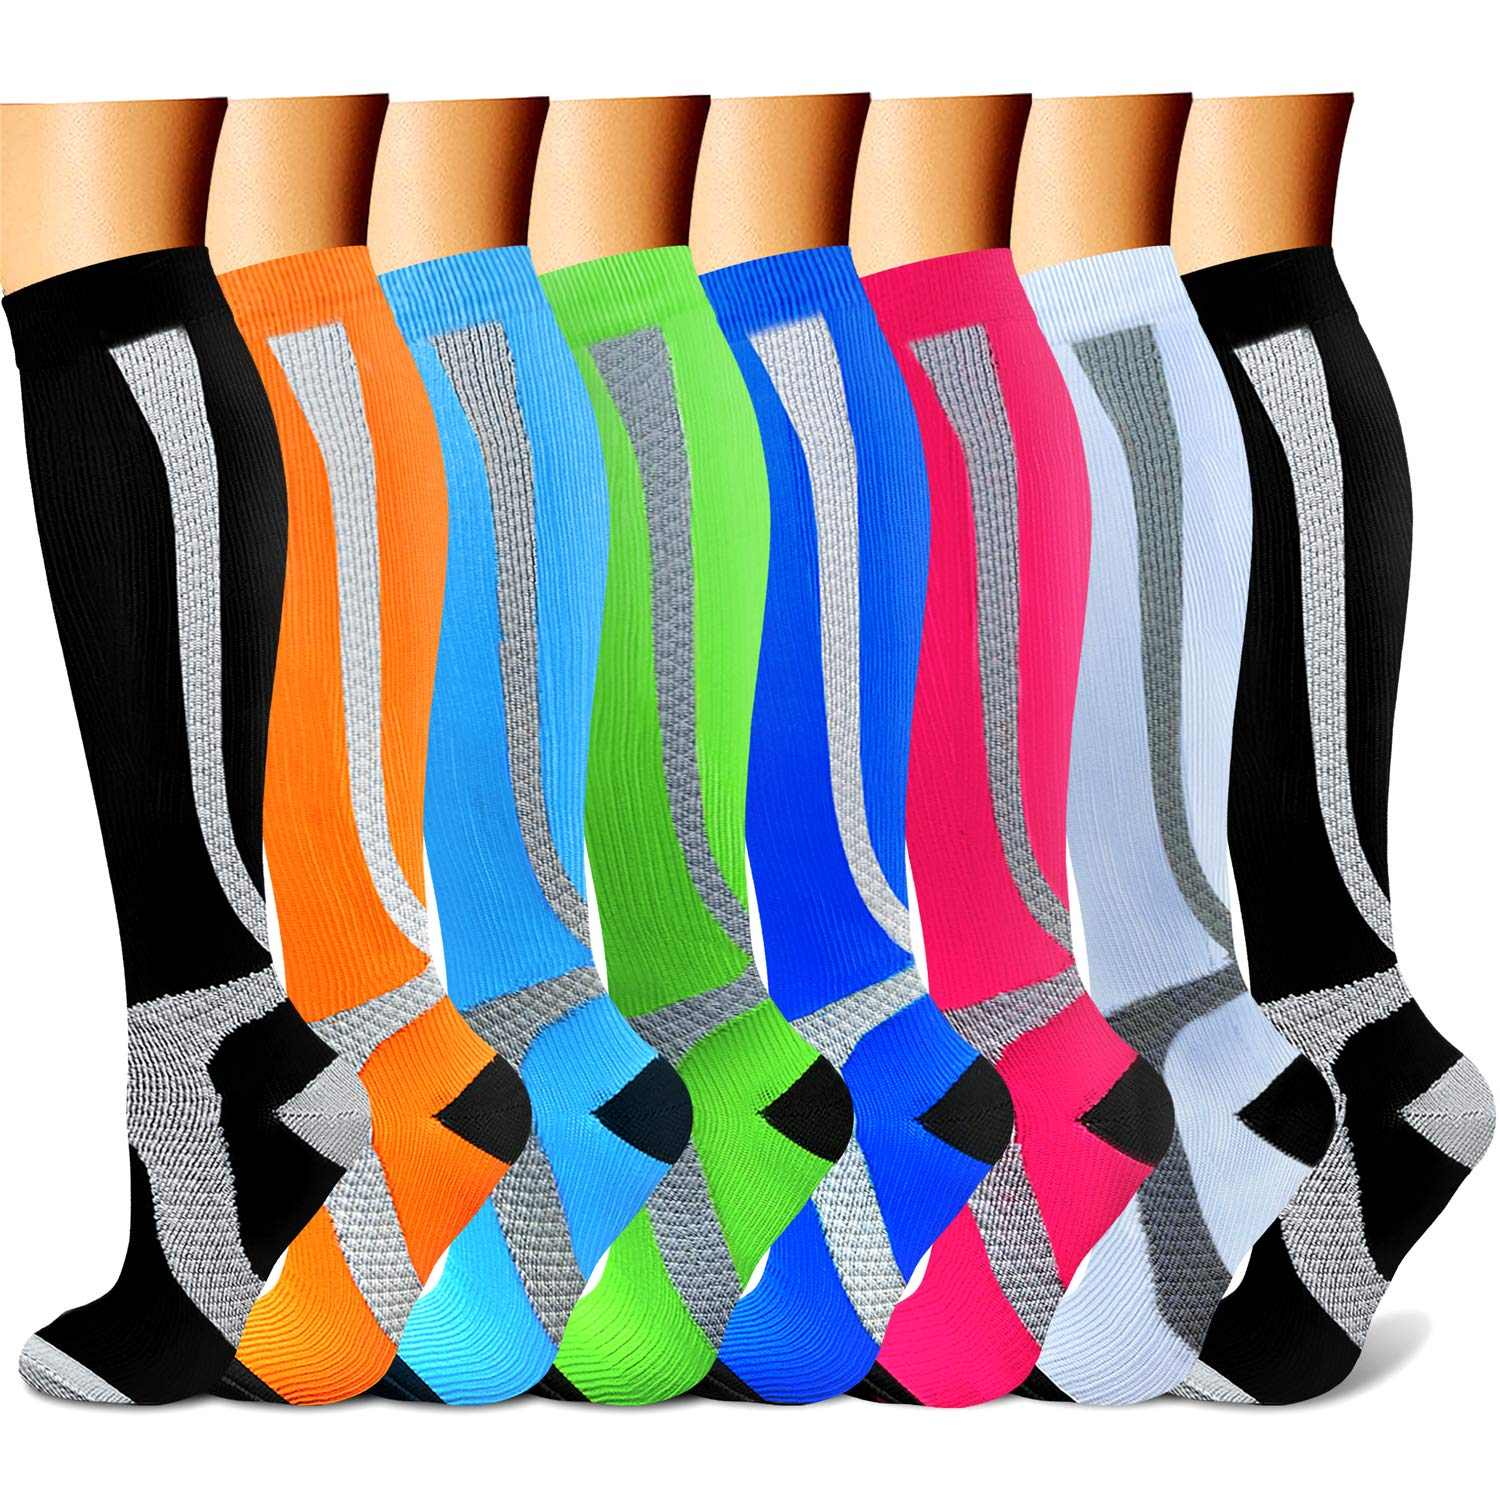 CHARMKING Compression Socks 15-20 mmHg is BEST Graduated Athletic & Medical for Men & Women Running, Travel, Nurses, Pregnant - Boost Performance, Blood Circulation & Recovery(Small/Medium,Assorted20)